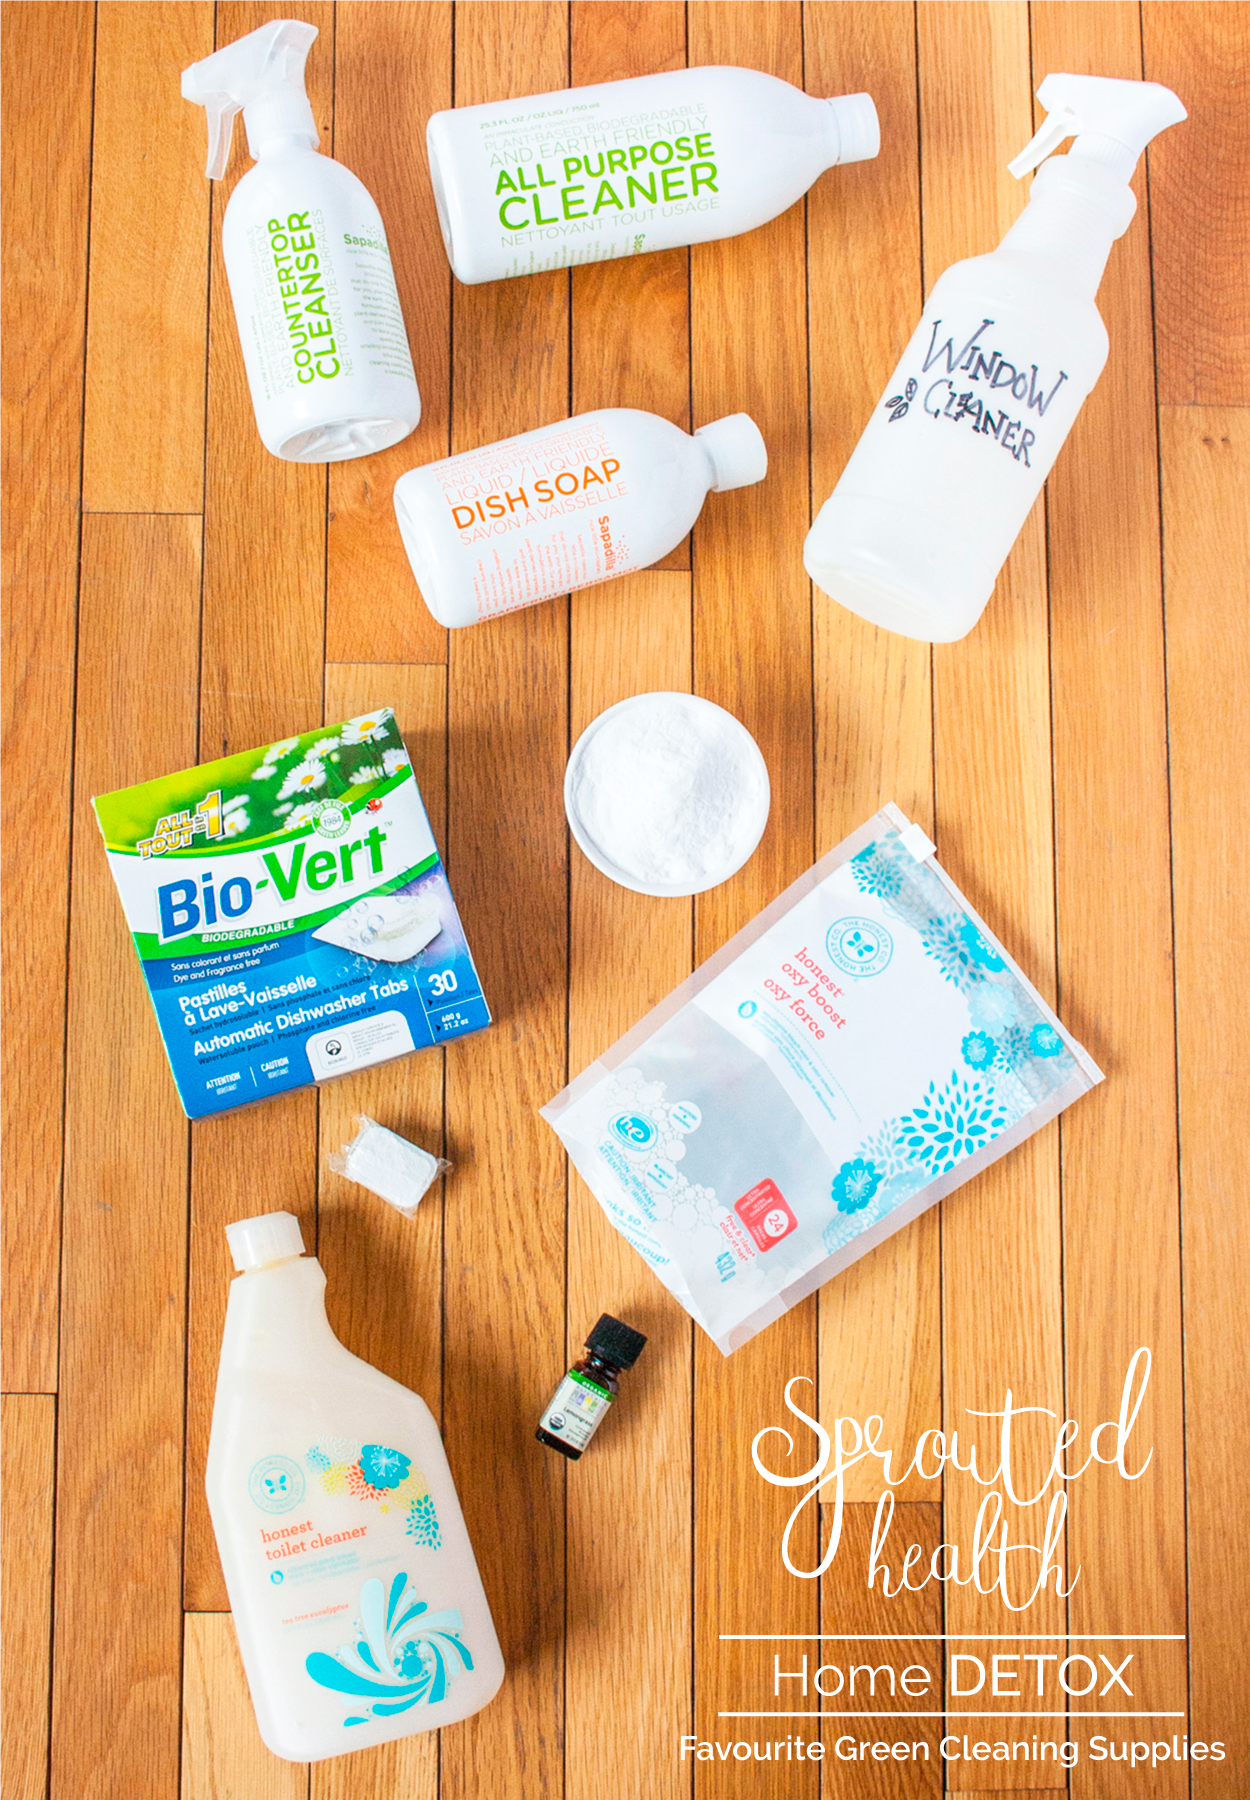 HomeDetox-FavCleaning-Products